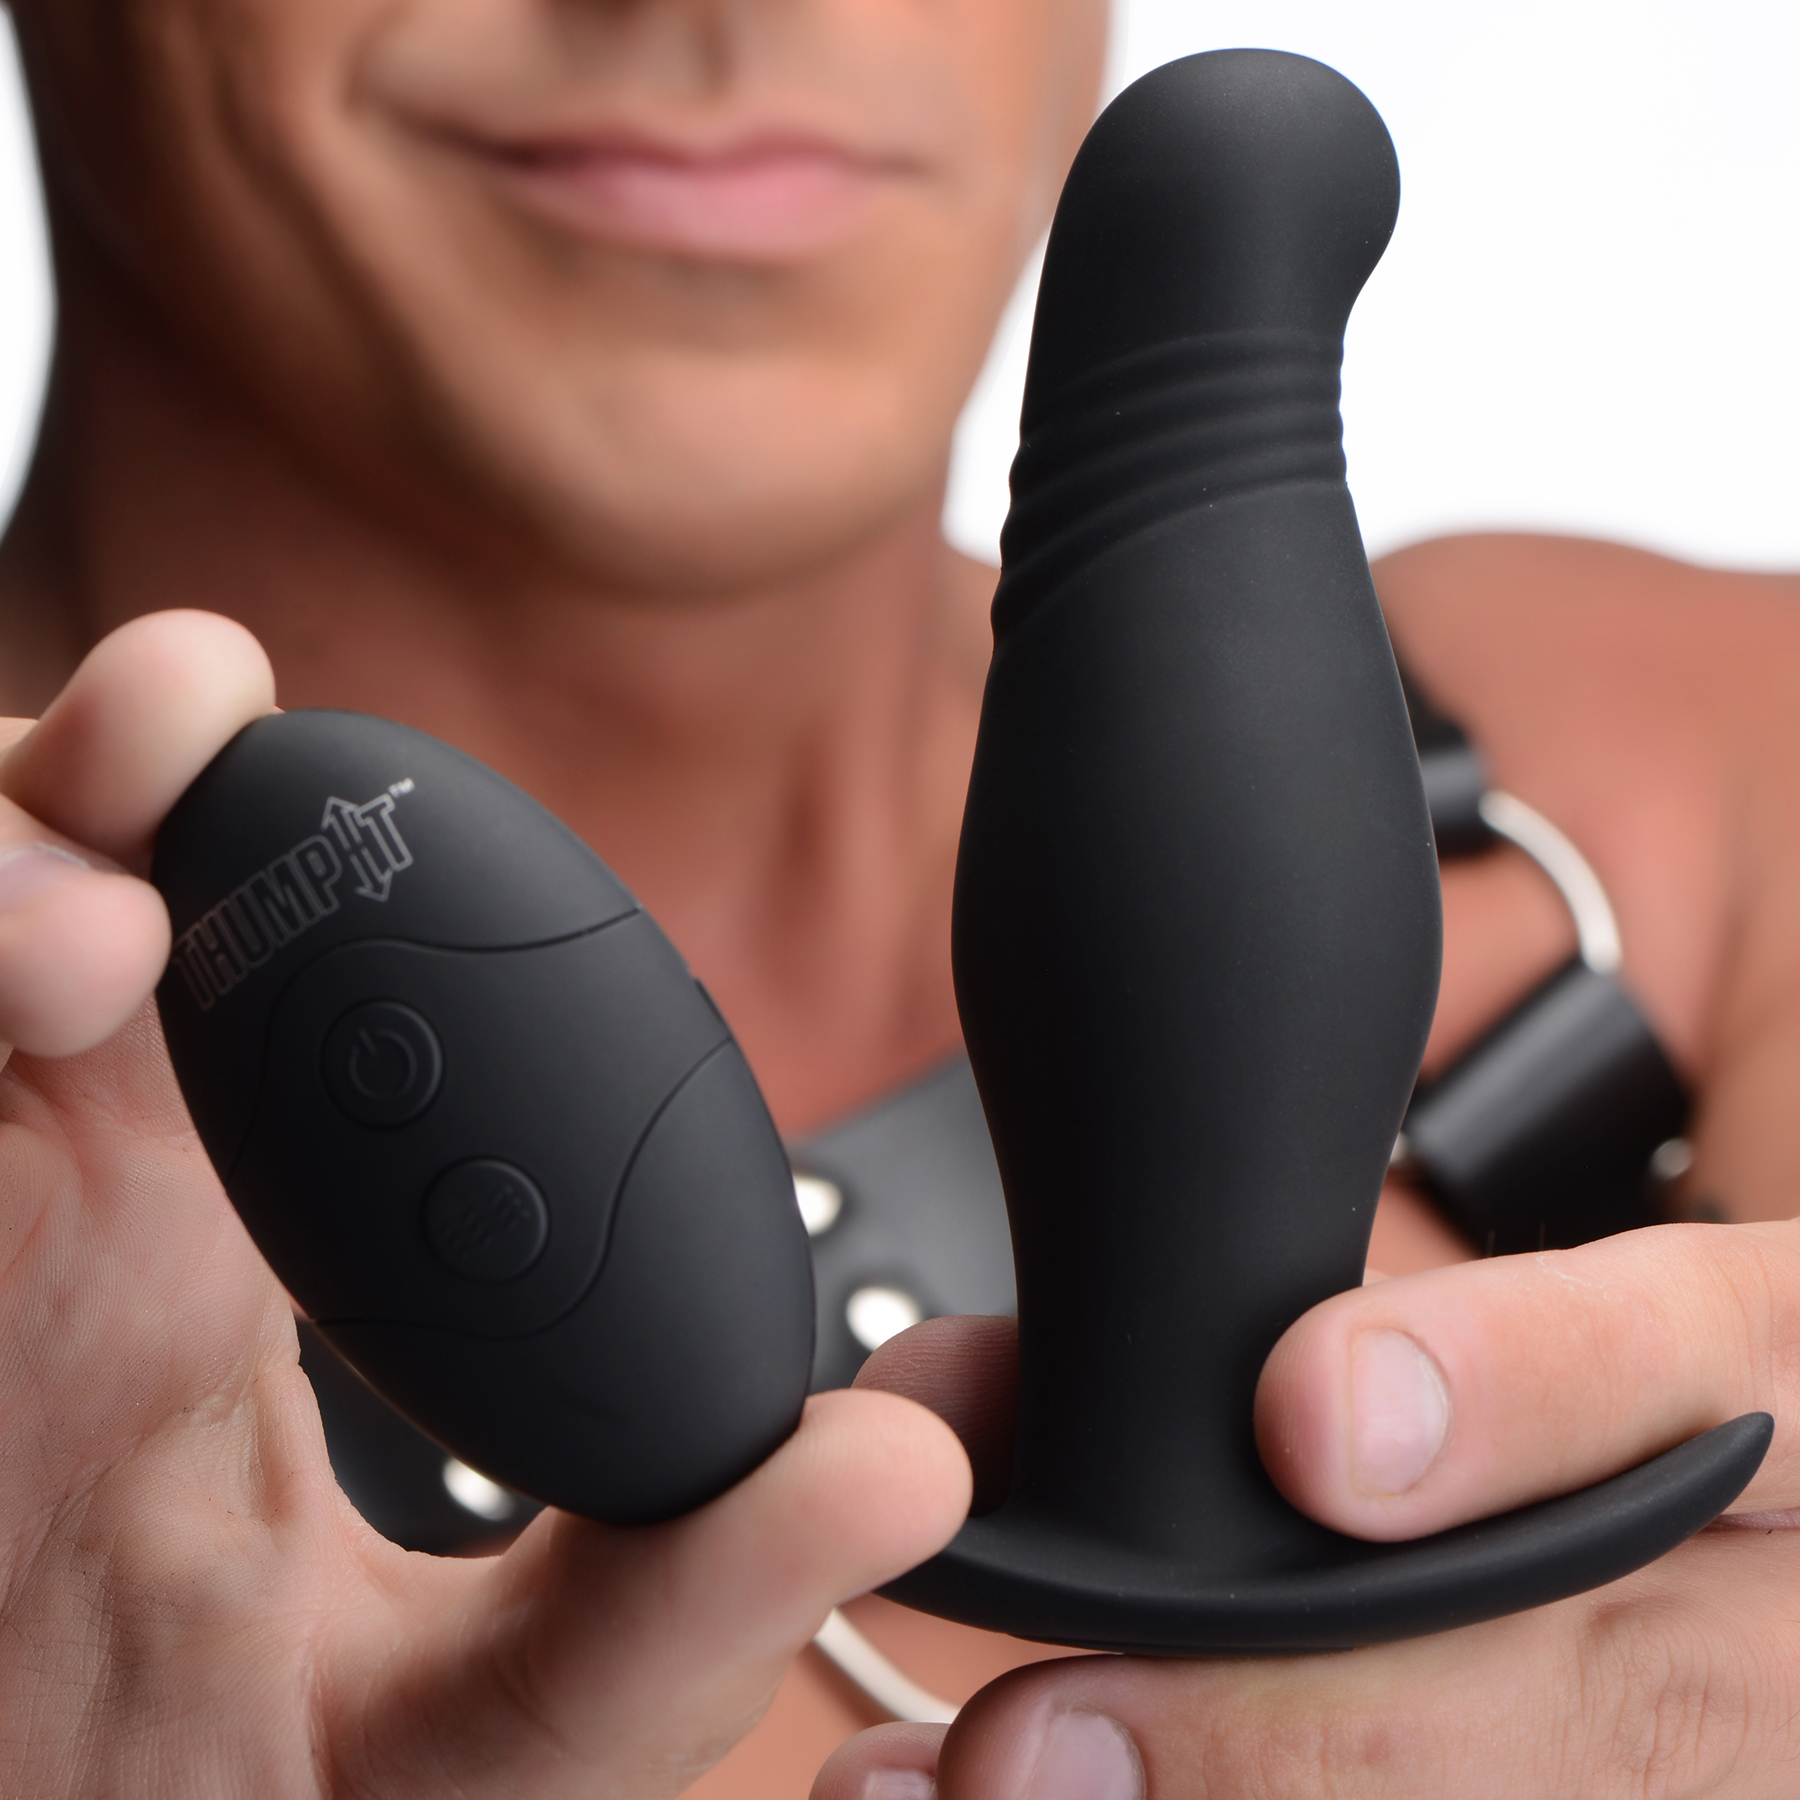 Thump It 7X Rippled Silicone Rechargeable Thumping Anal Plug - In Hand